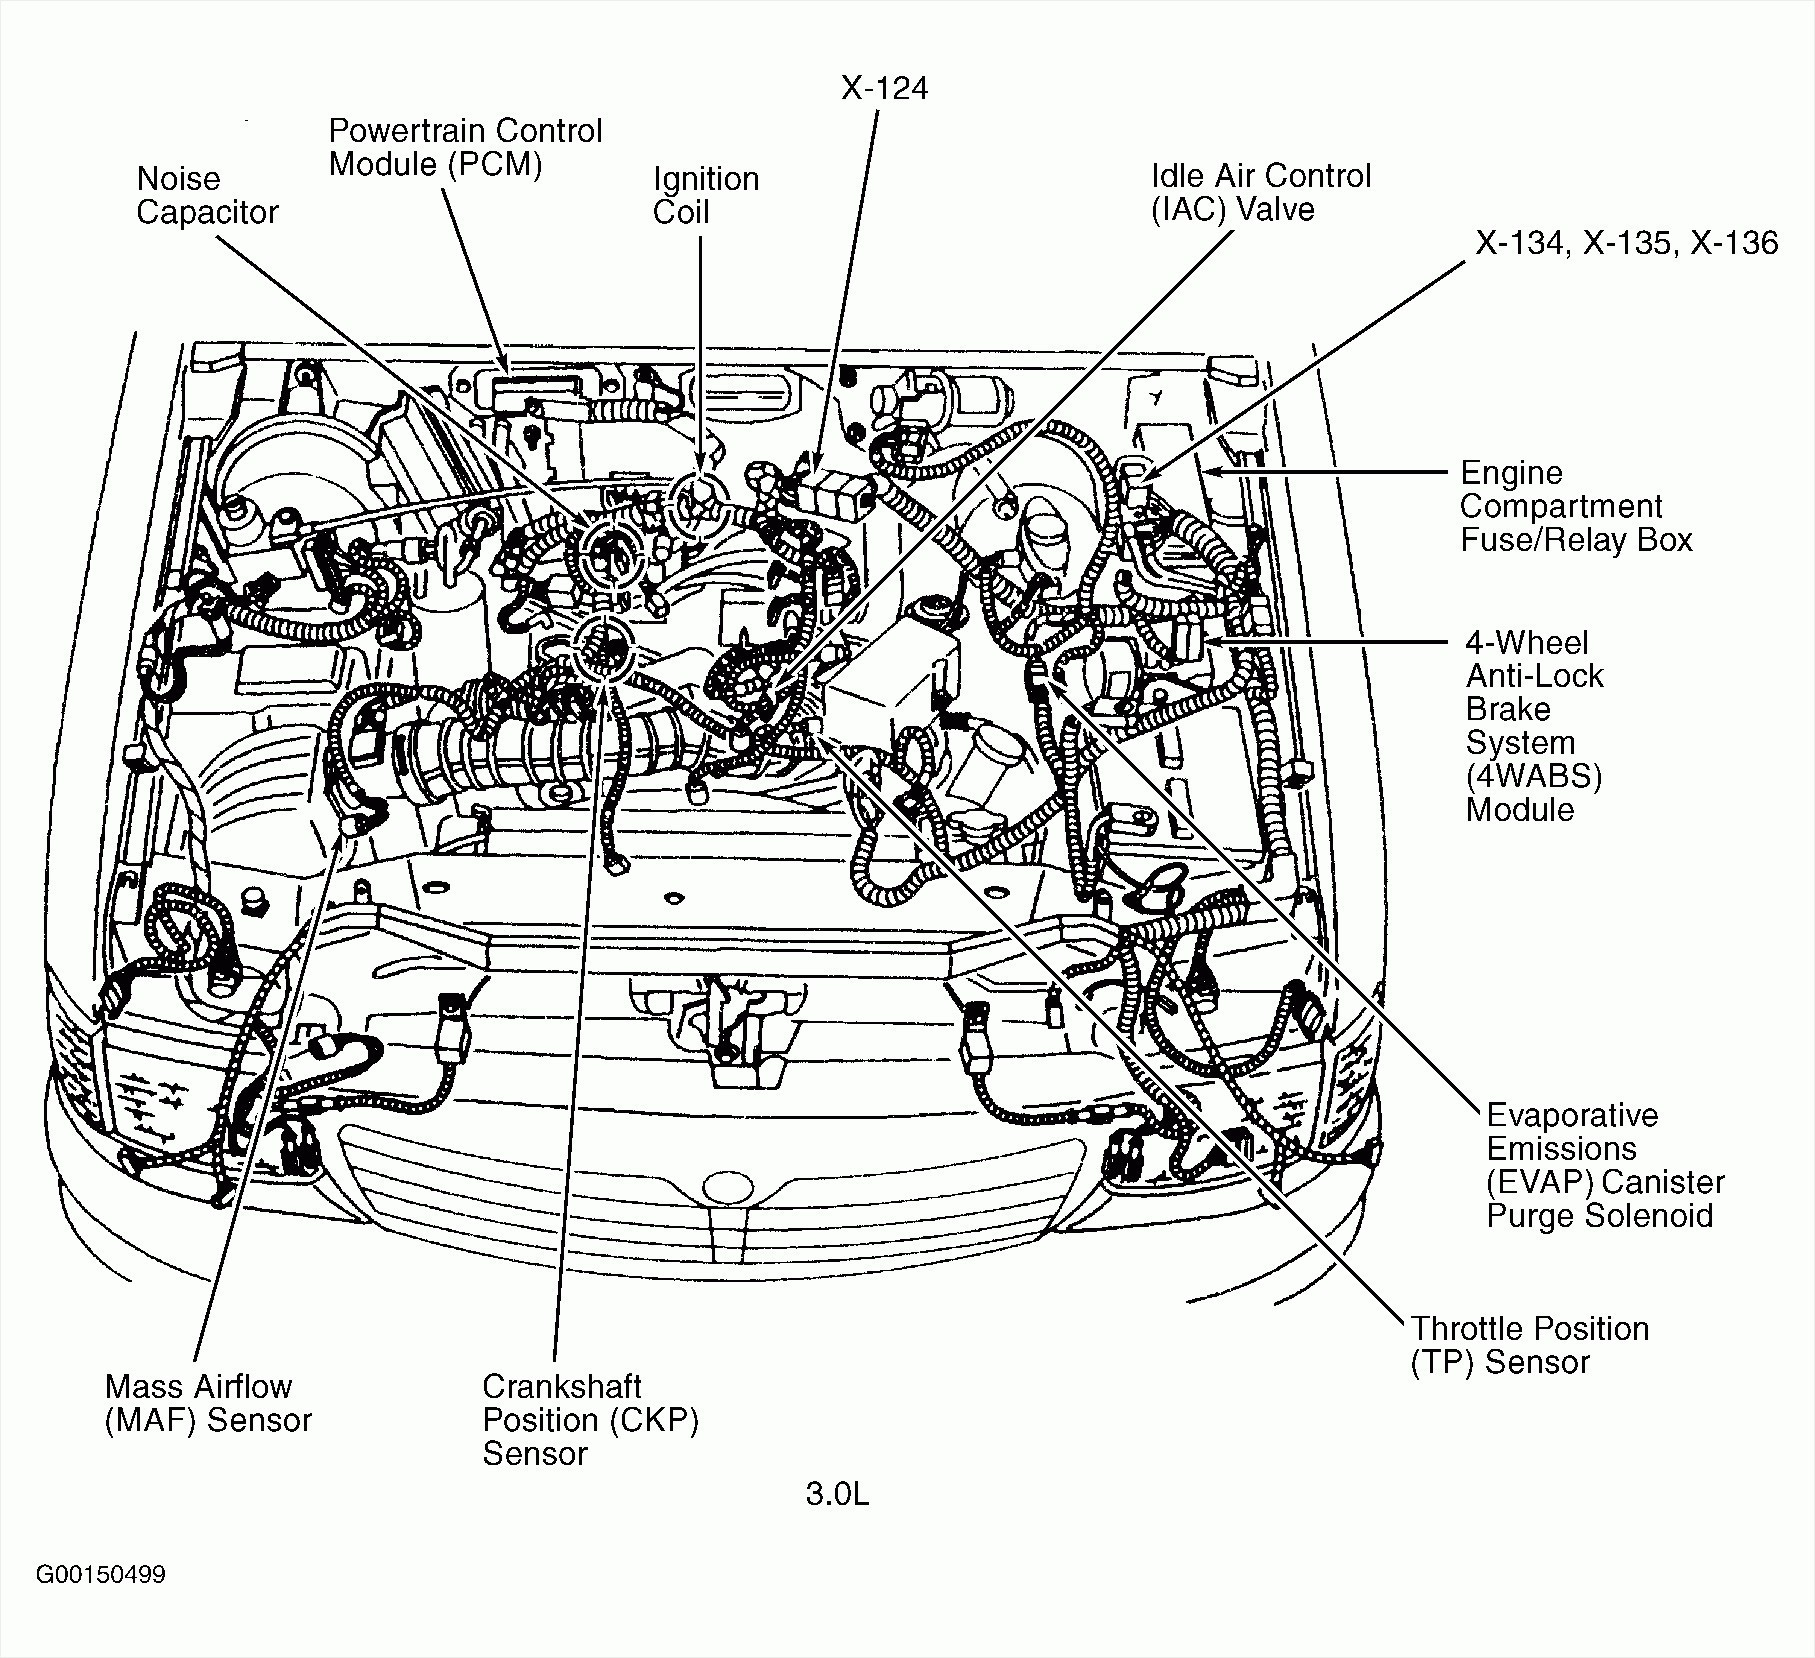 1997 ford ranger engine diagram ford ranger engine diagram